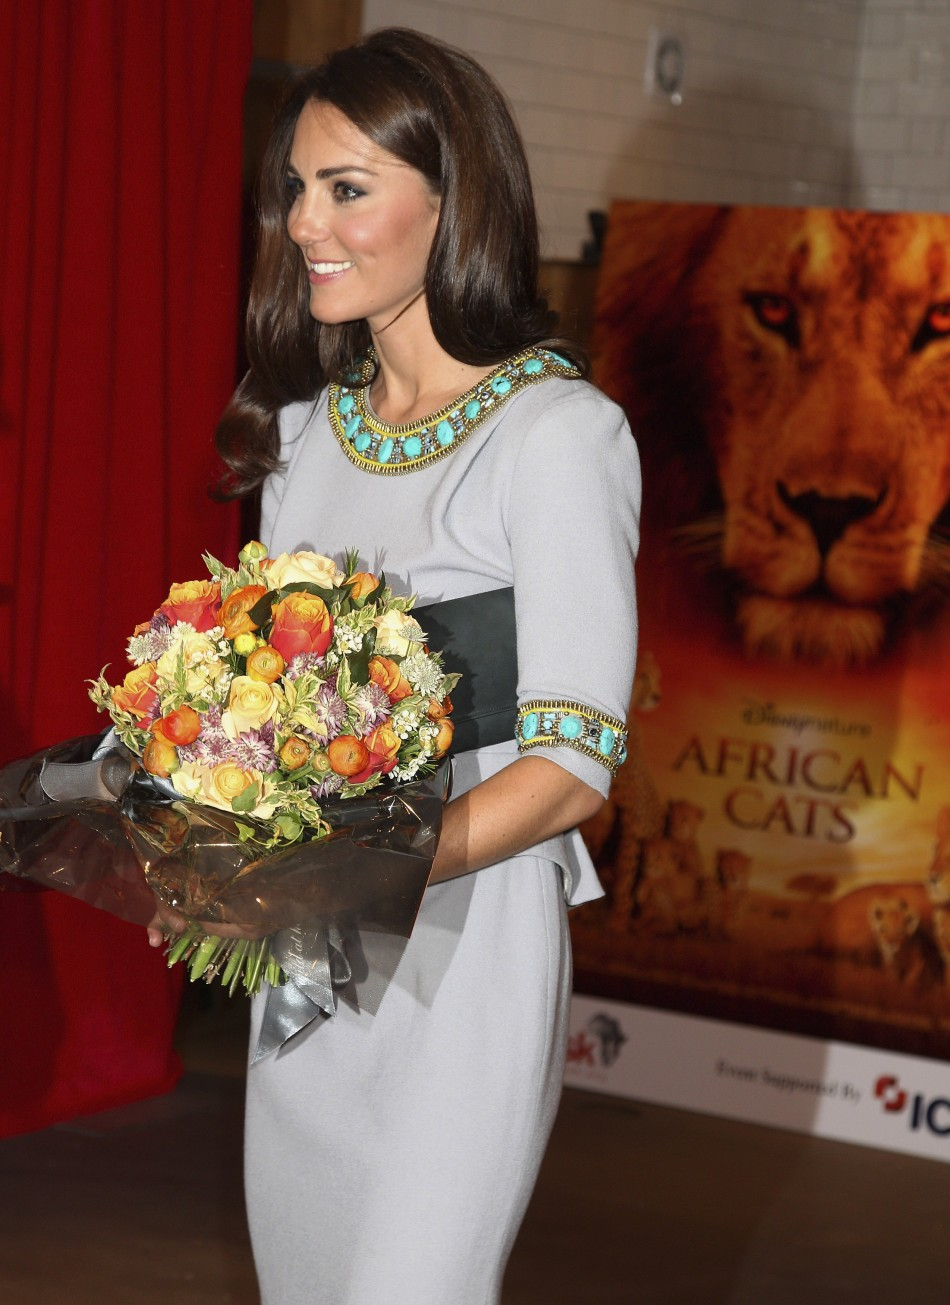 William & Kate Attend 'African Cats' UK Premiere